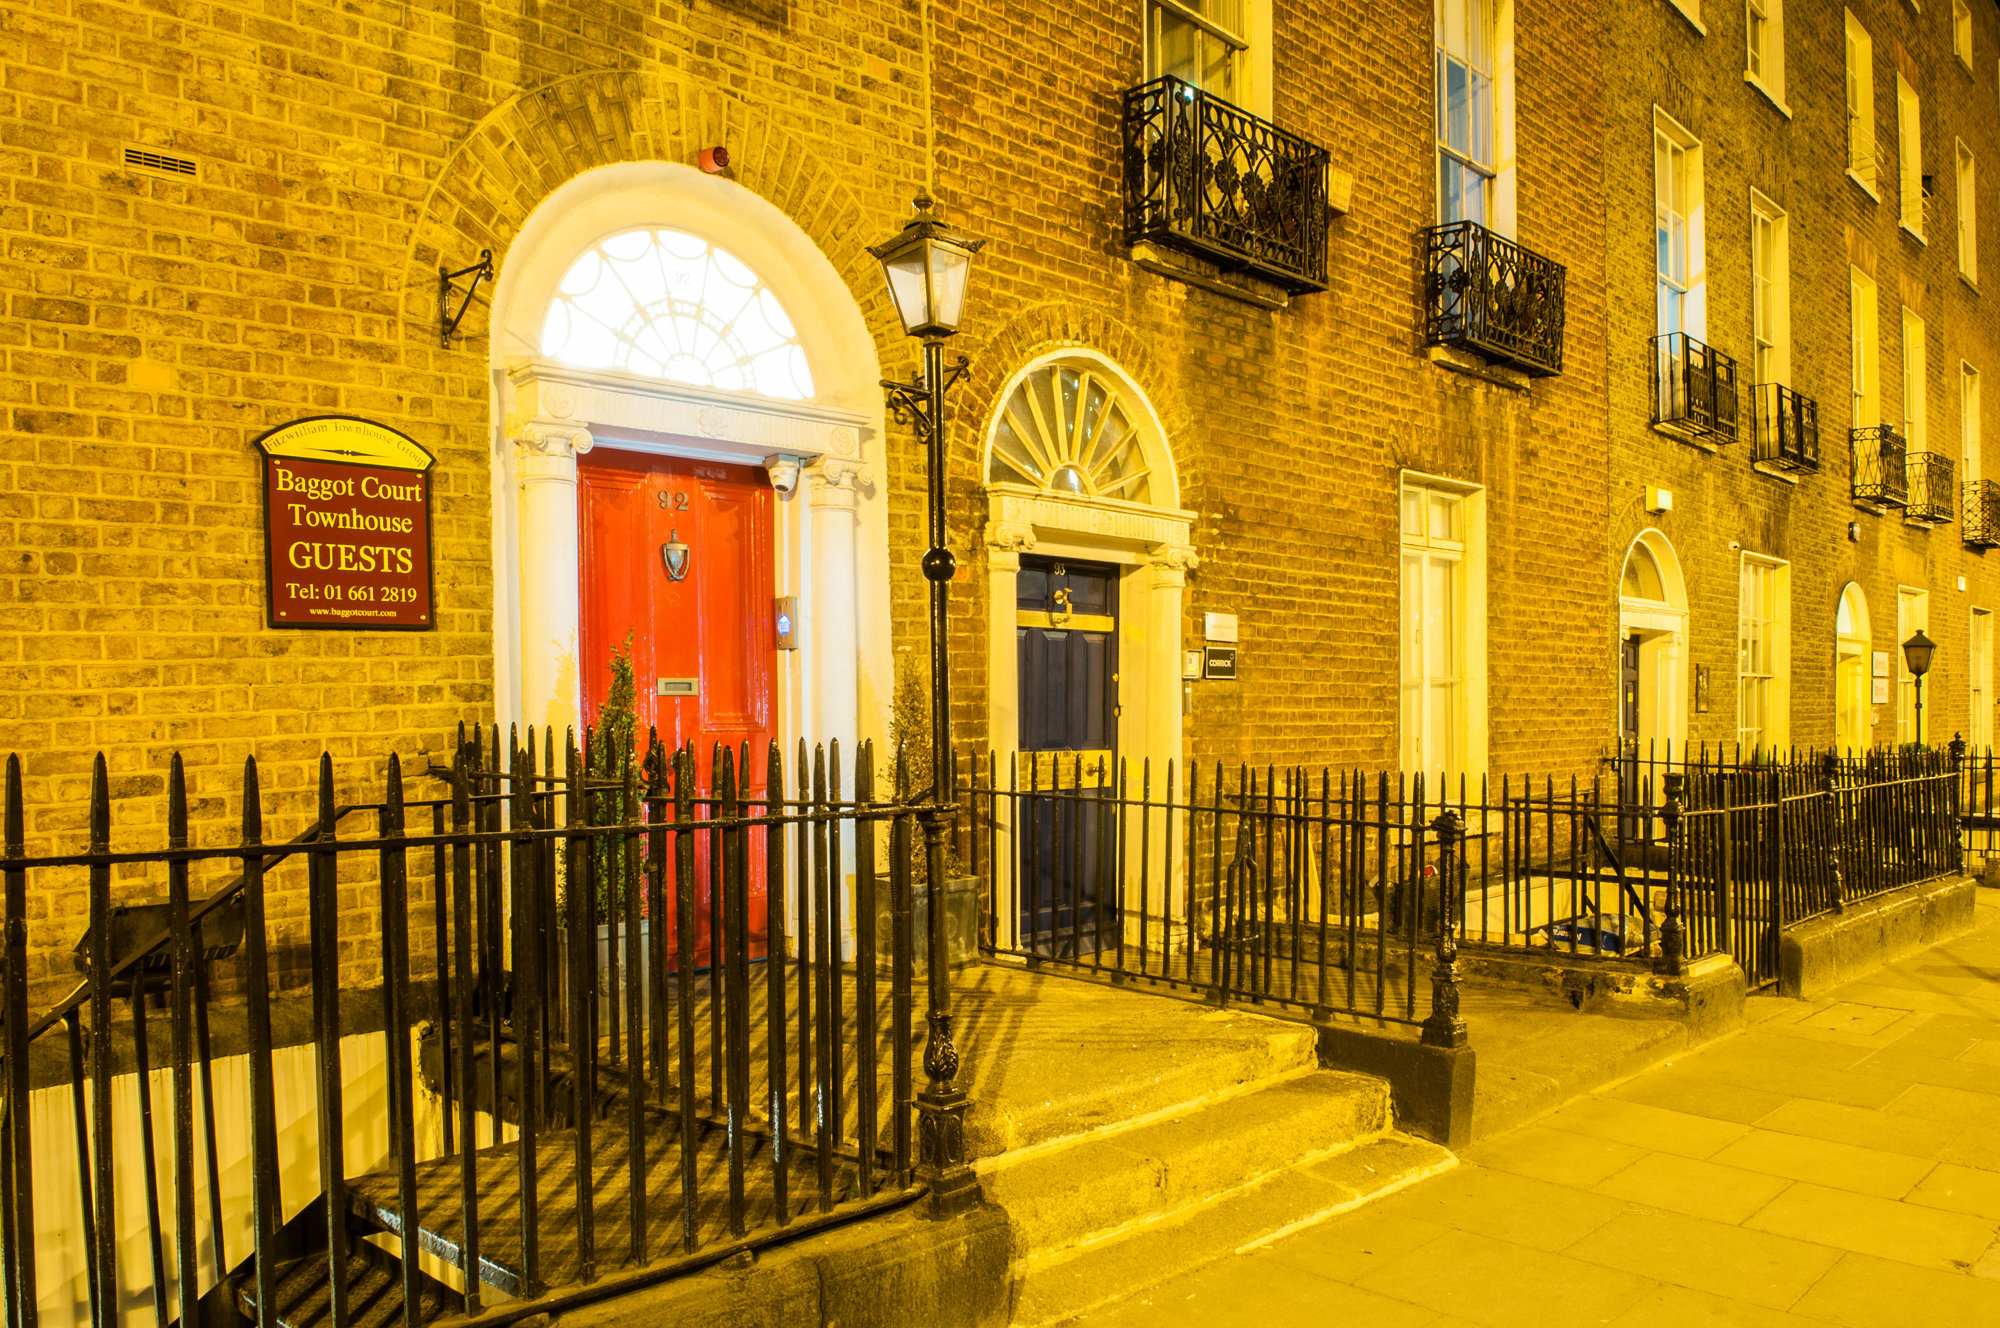 92 Lower Baggot Street